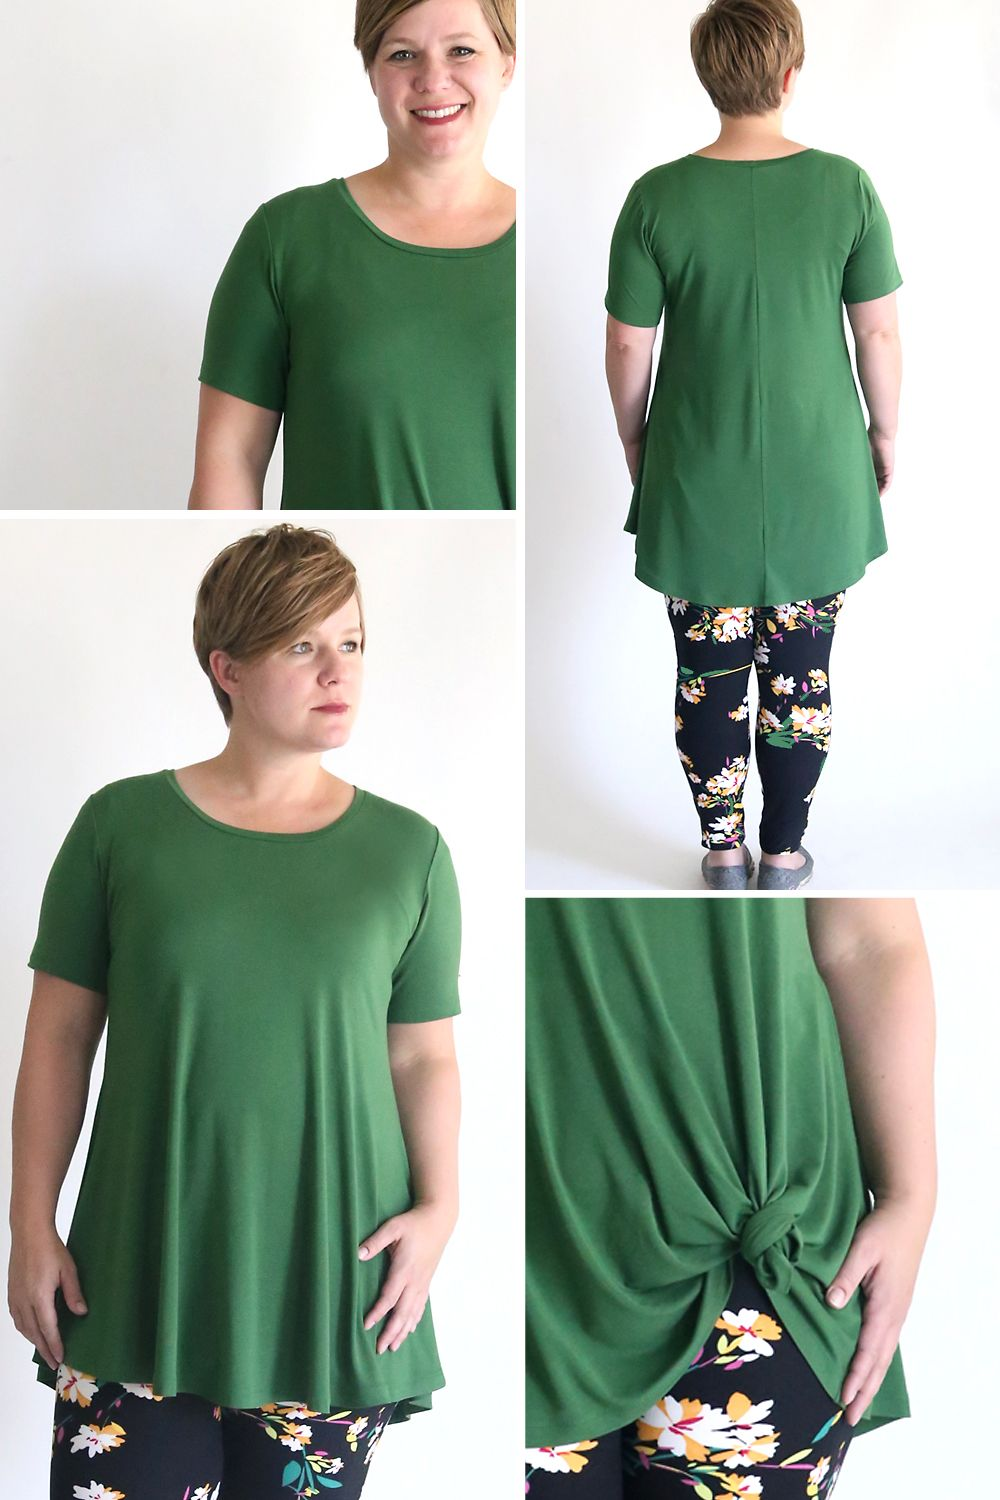 Tips on how to sew a tunic with your own hands